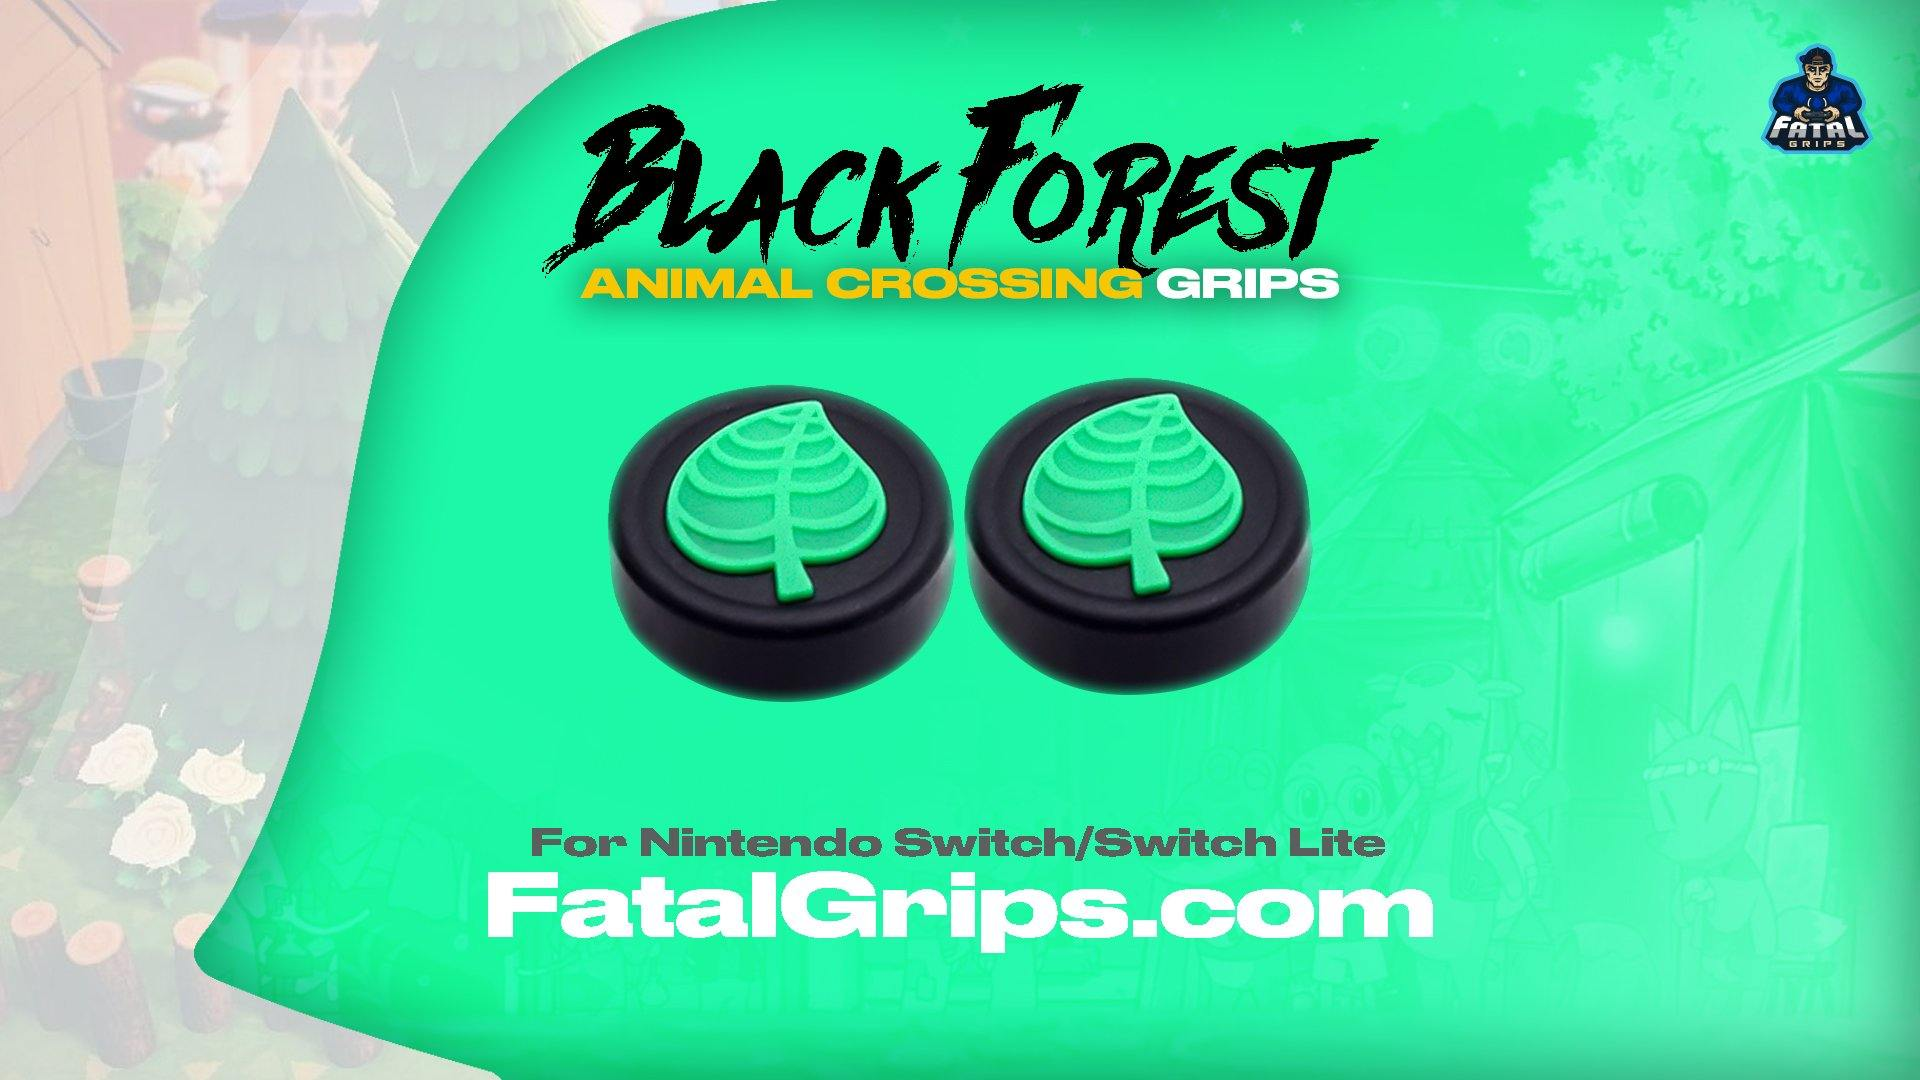 Black Forest Animal Crossing Grips